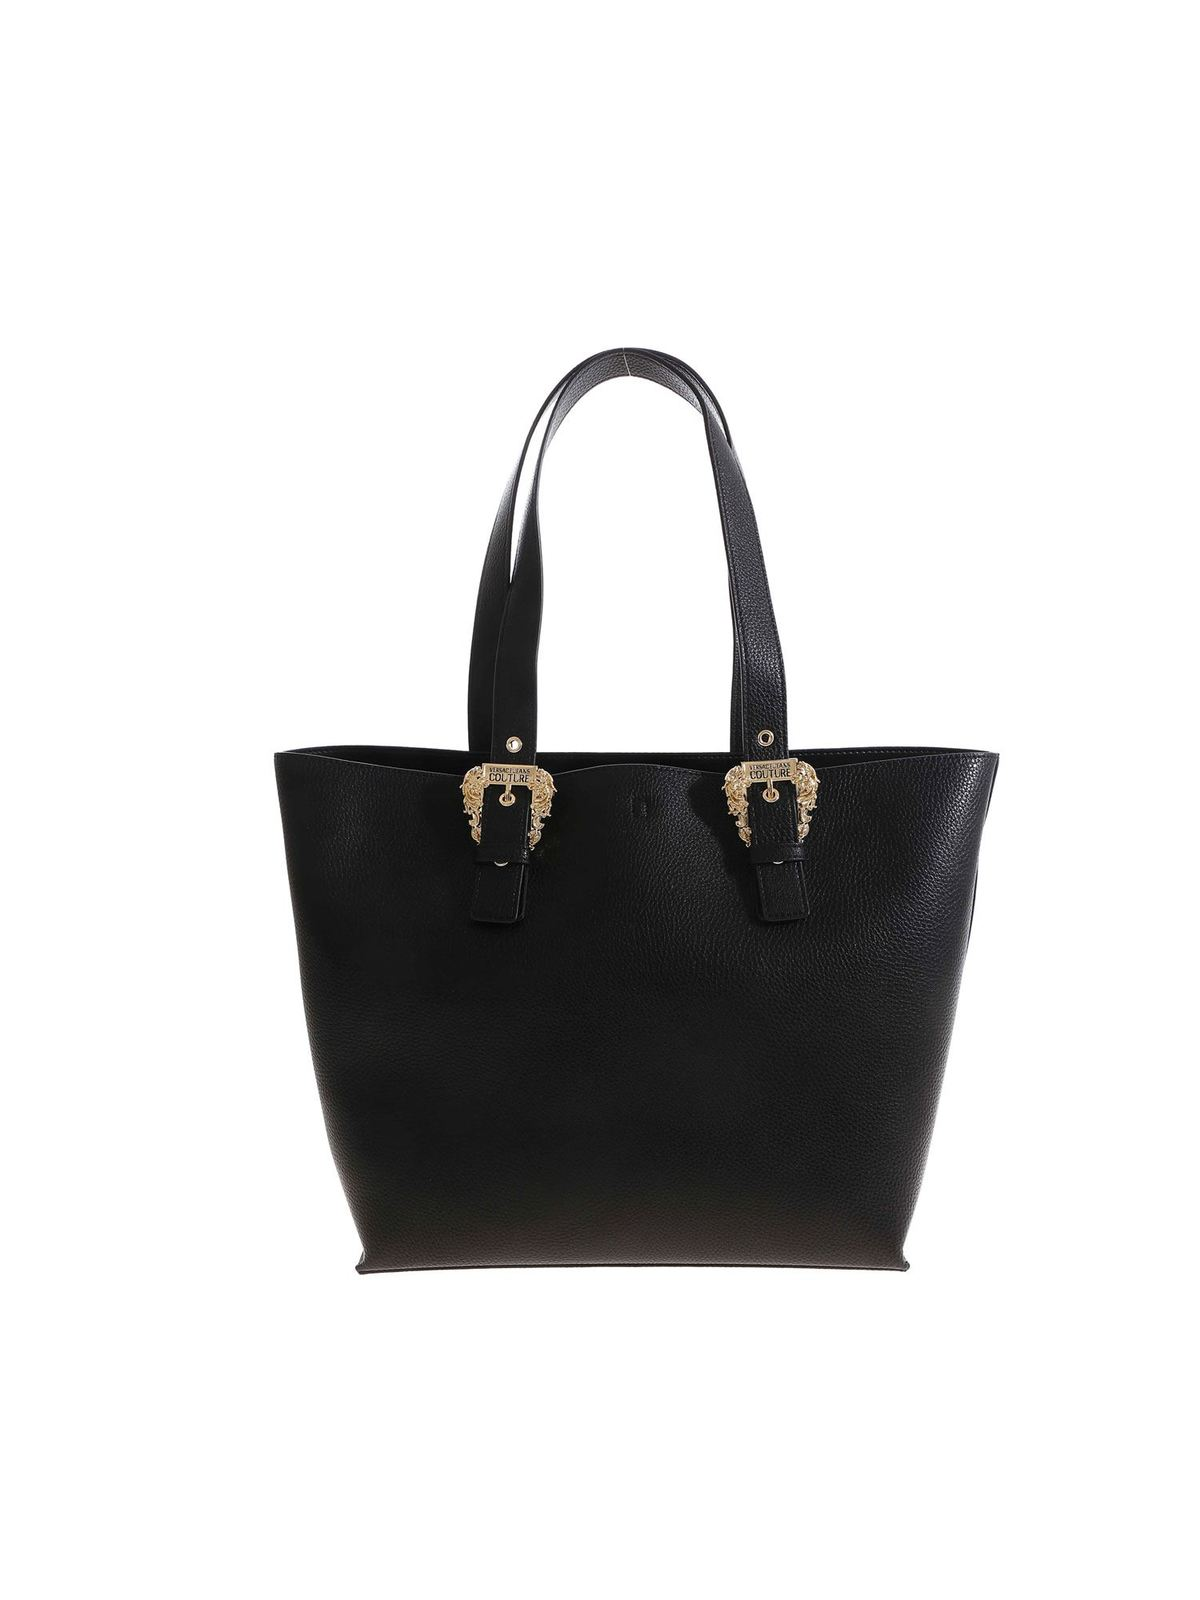 Versace GOLD COLORED BUCKLE SHOPPER